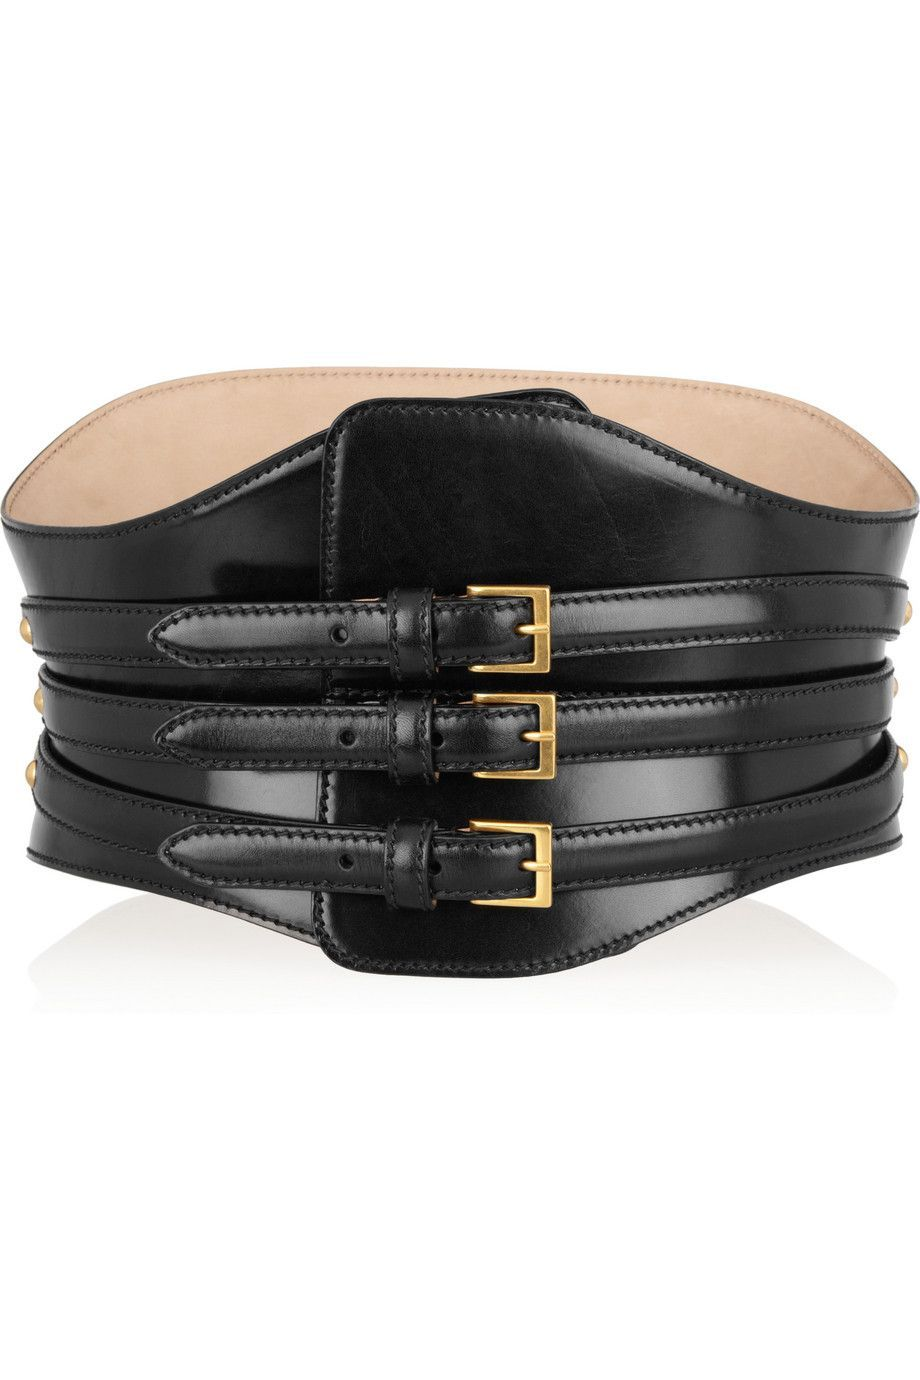 Leather Waist Belt - Black Alexander McQueen cNA25SP